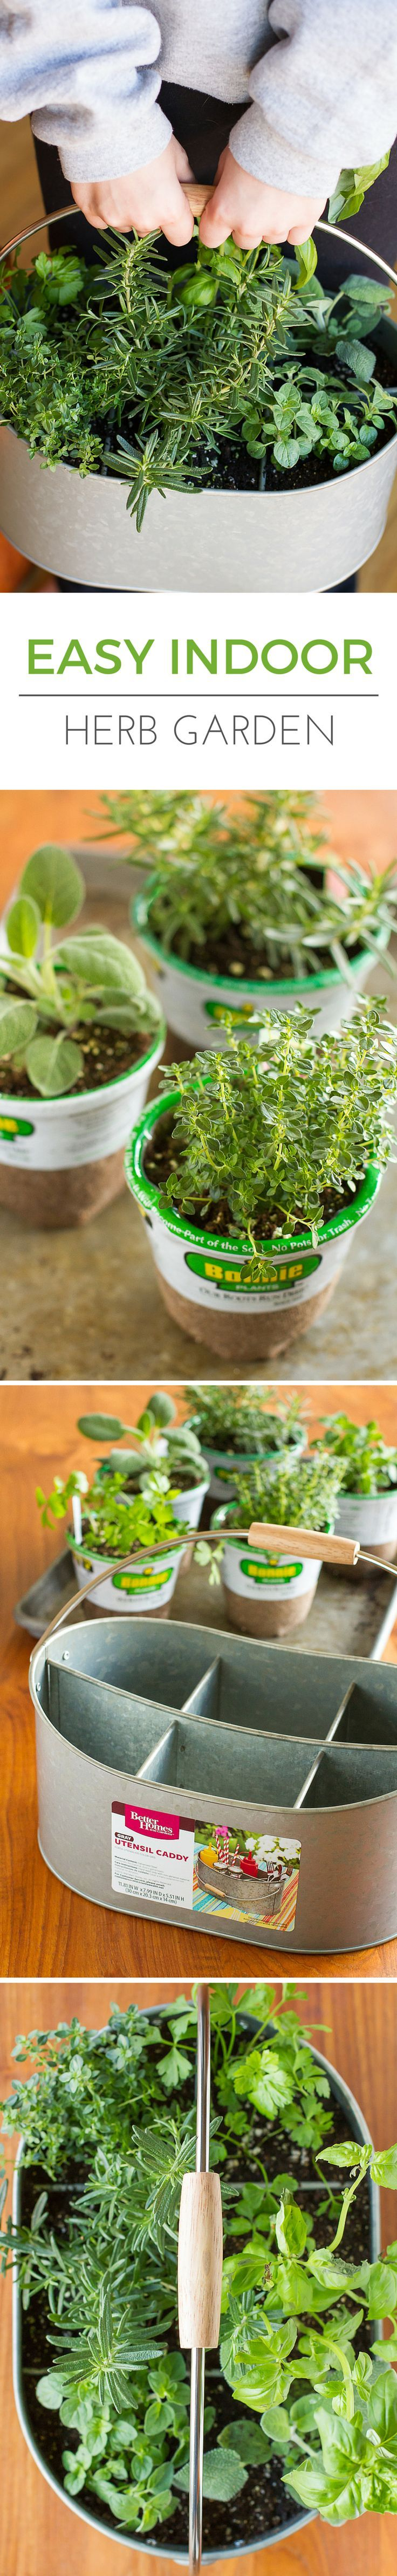 Easy Indoor Herb Garden -- I was an indoor container gardening failure, until I decided a different approach was in order. Find out how you can create this simple indoor herb garden in under 10 minutes! | via /unsophisticook/ on http://unsophisticook.com